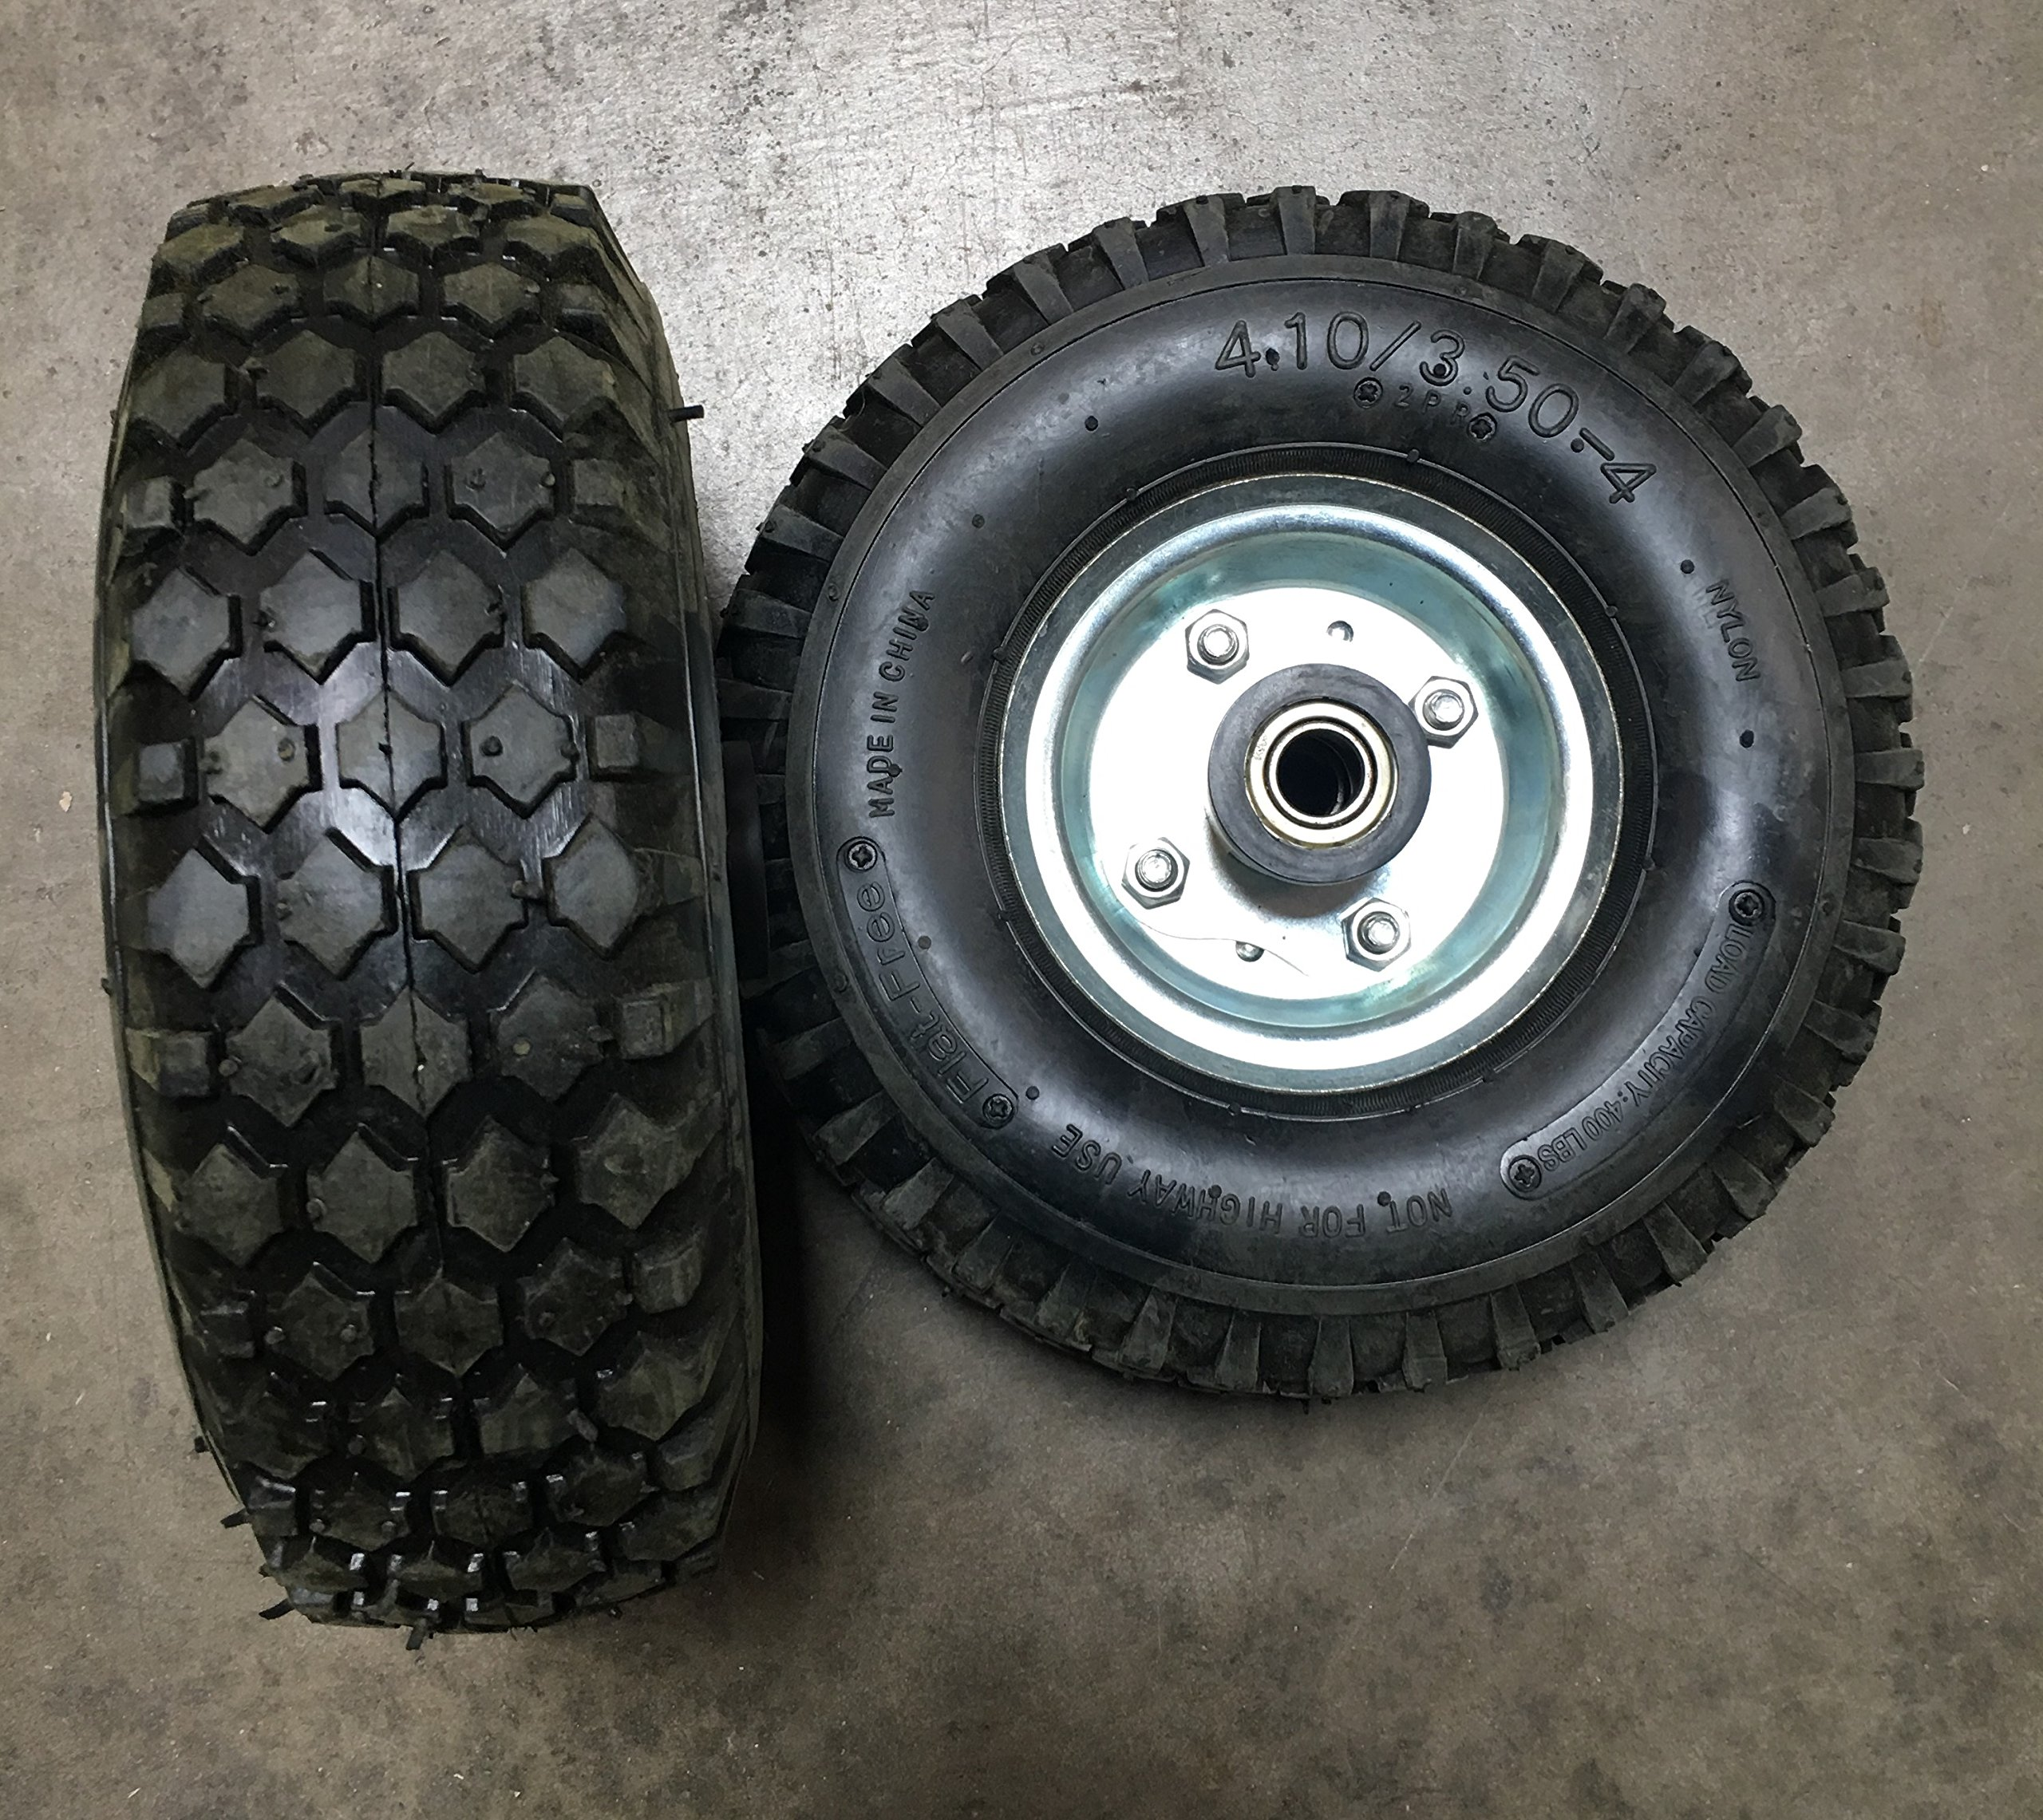 New Pair of 500LB Non Flat Tires, Hand Truck / All-Purpose Utility Tire on Wheel, 2 1/8'' Offset Hub, 5/8'' Bearings by MQT (Image #2)